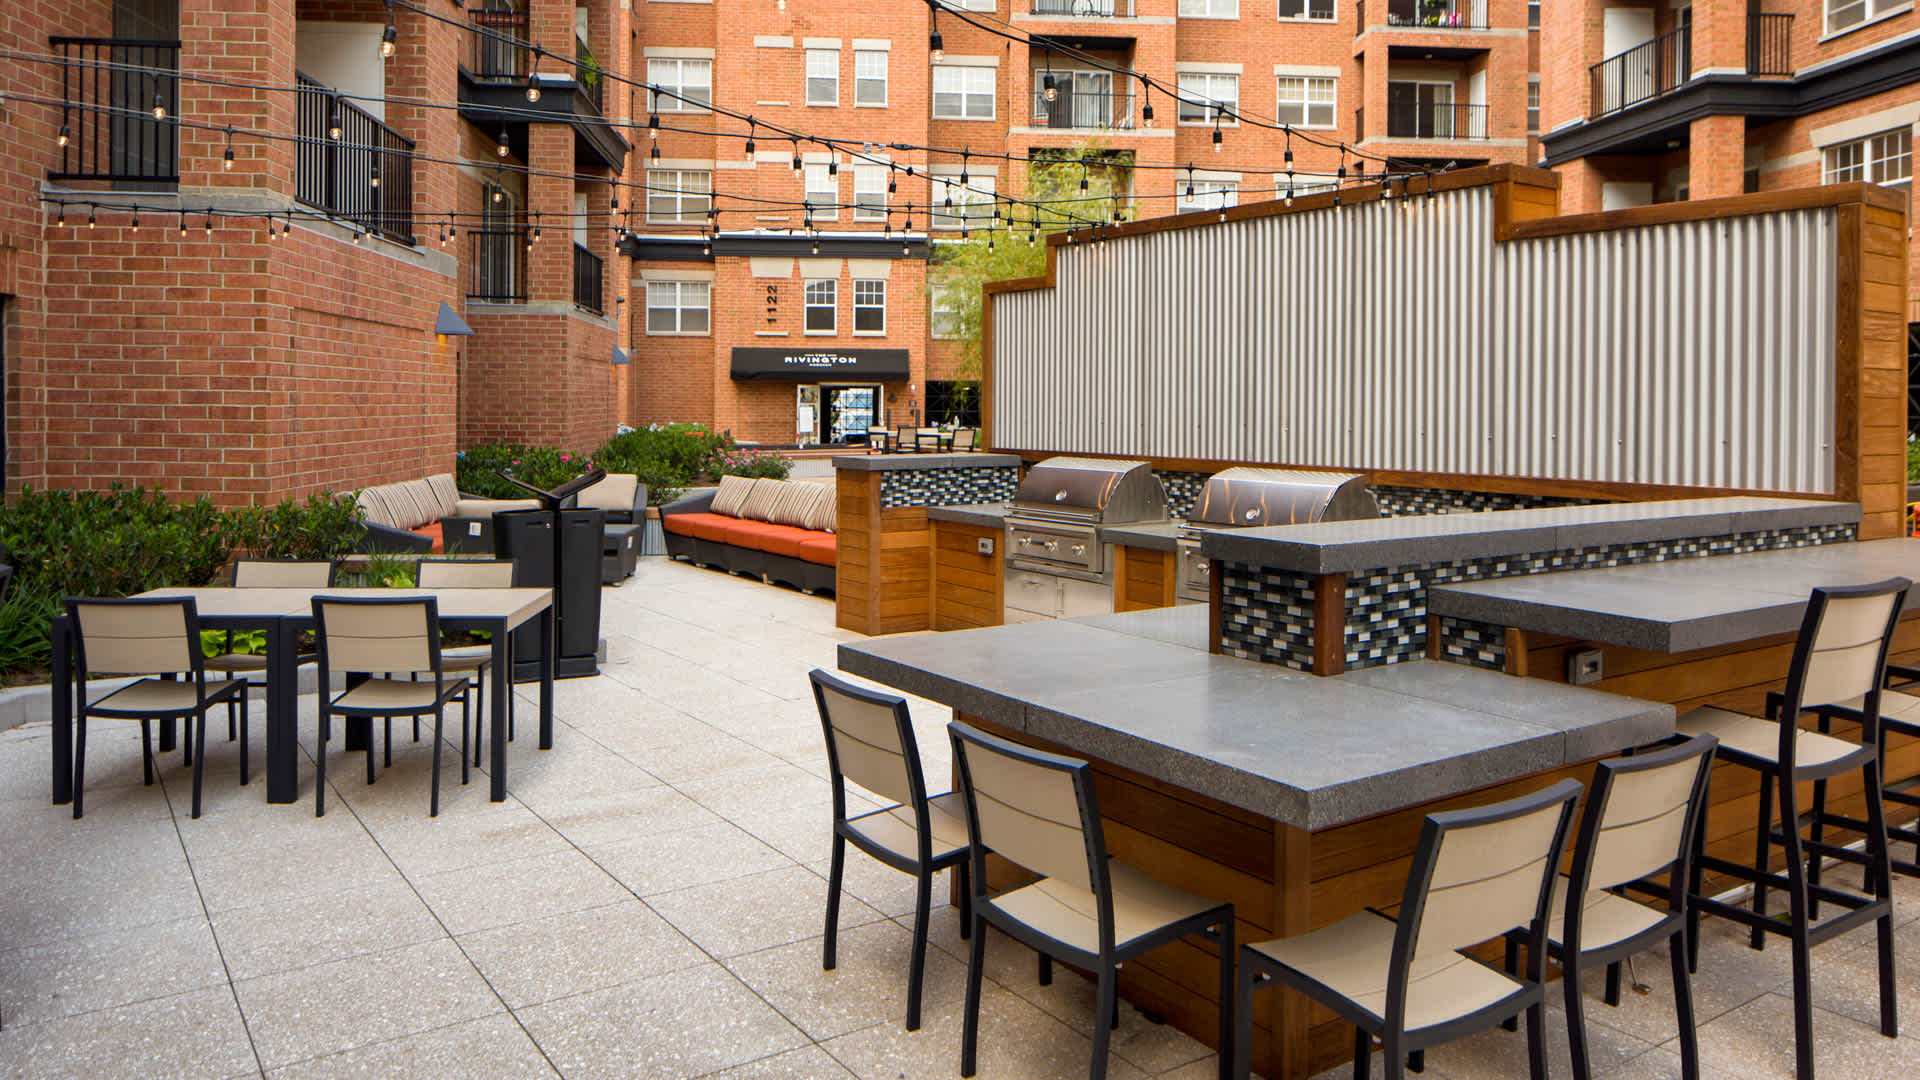 Search for Roommates in Jersey City Using our Service ...